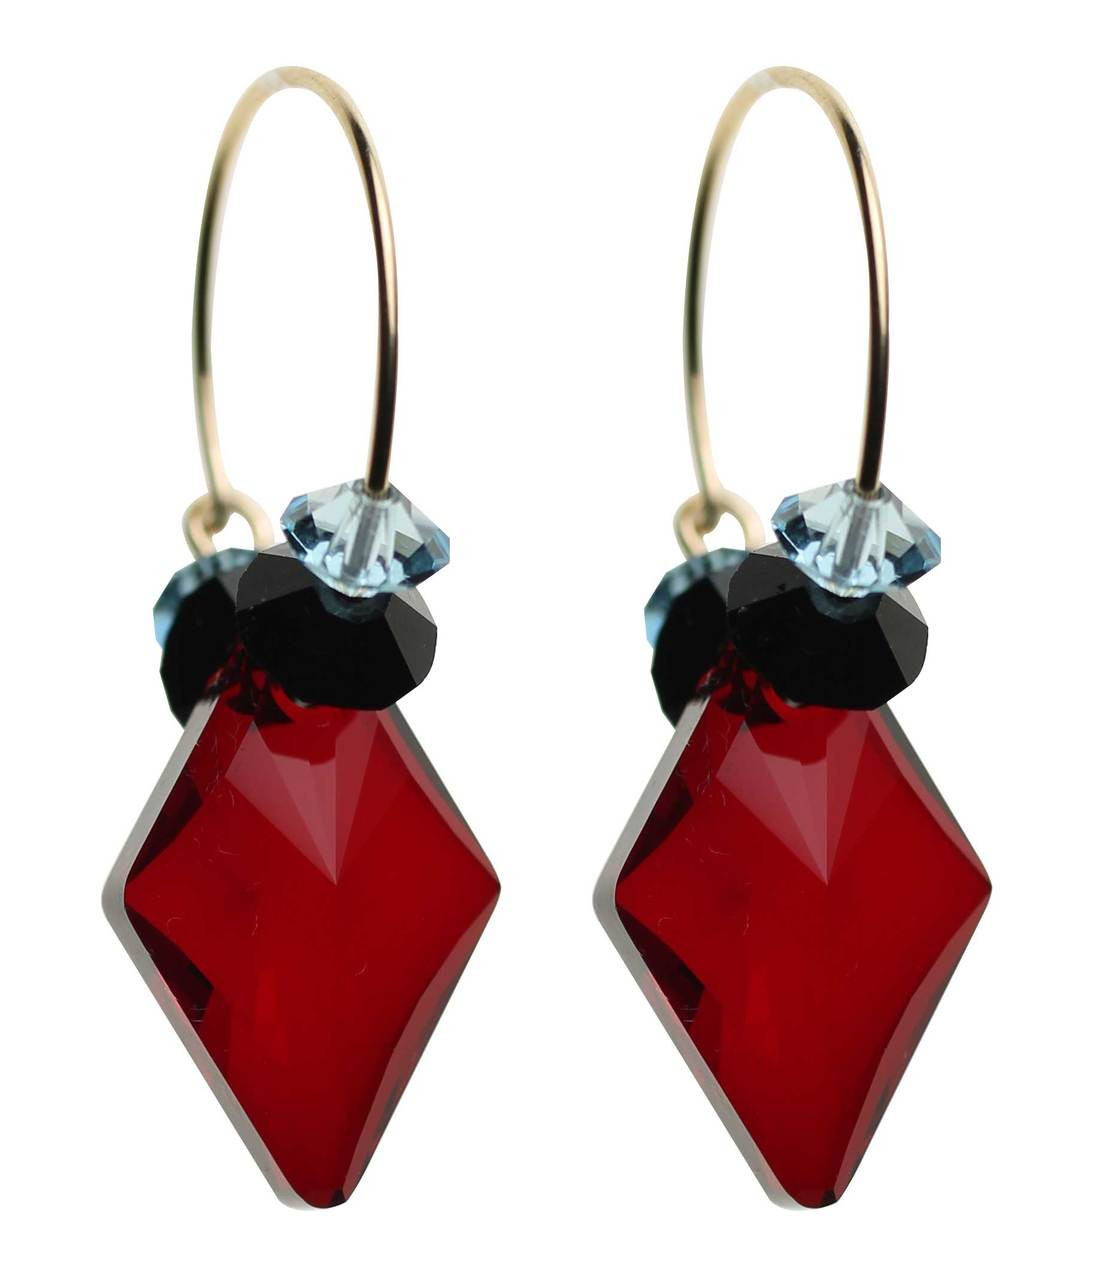 033d30a4312e5 Bright Red Diamond Shaped Hoop Earrings • Modern and Vintage Crystals from  Swarovski • 14K Gold Filled Metal • Navajo Collection